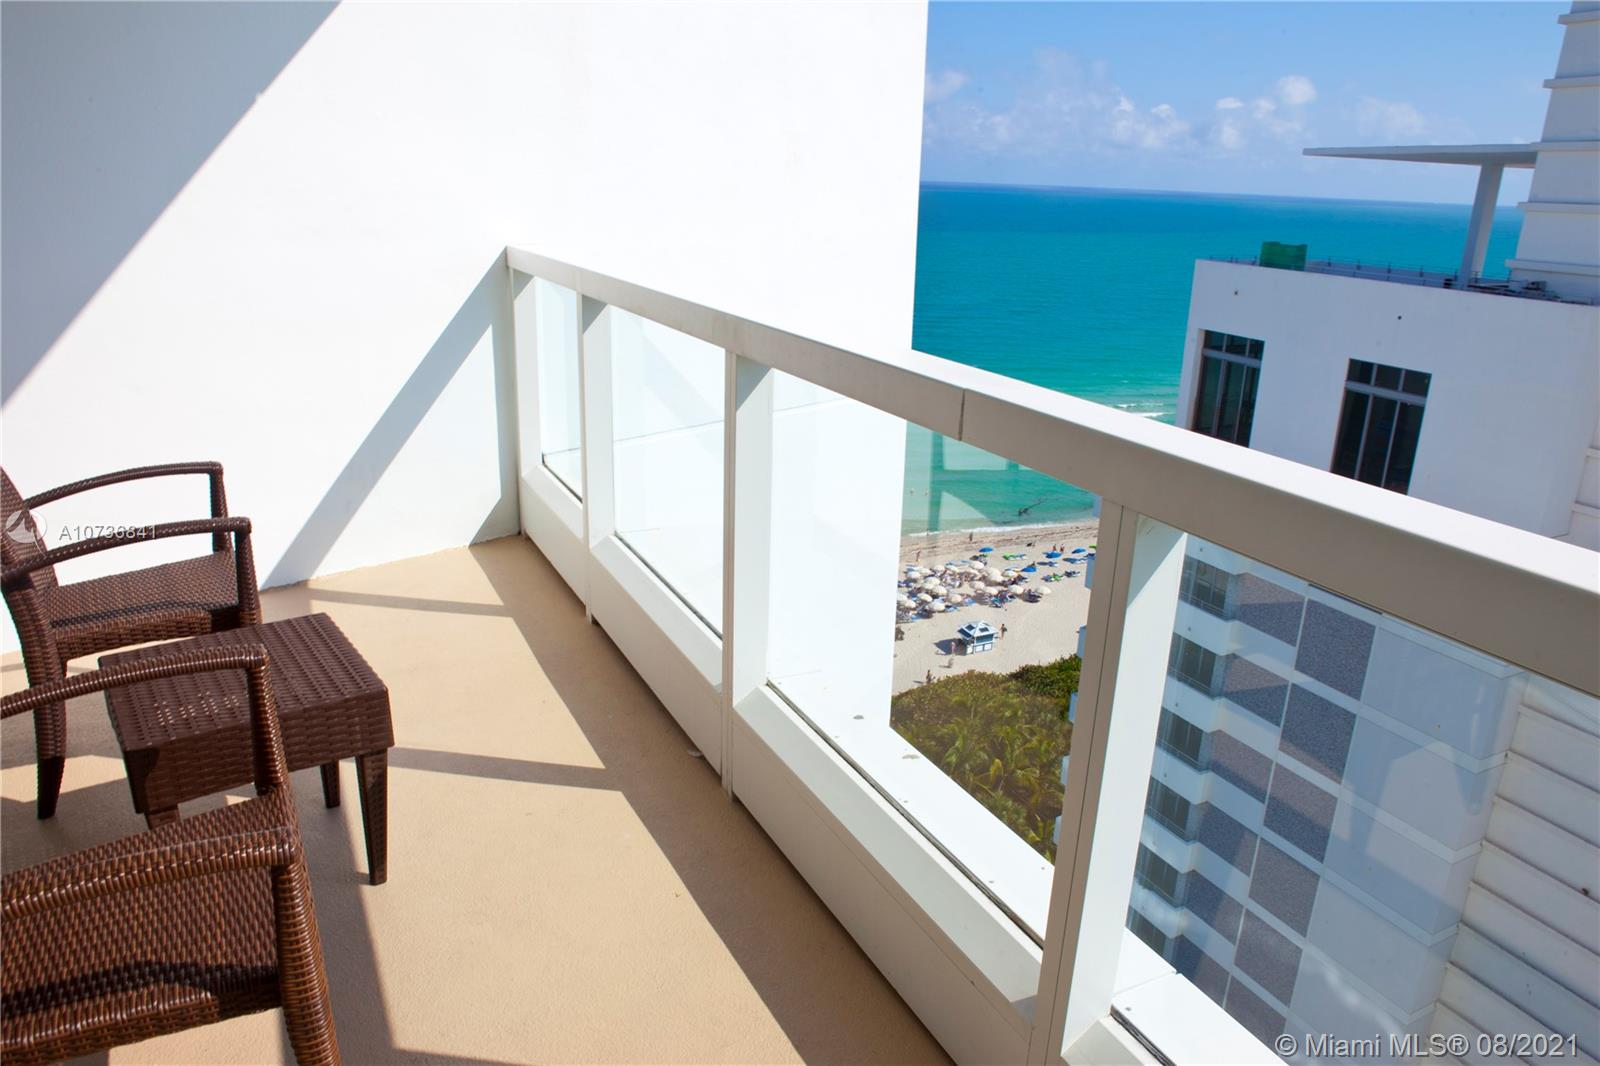 JR SUITE OVERLOOKING TO THE OCEAN AND CITY. BEST SUNSET VIEWS. VACATION STYLE LIVING - KING SIZE BED,SOFA-BED , KITCHENETTE, LARGE BALCONY . FIVE STAR SERVICE OF FONTAINEBLEAU HOTEL, LUXURY AMENITIES , POOLS, SPA,FITNESS CENTER, KIDS PLAY AREA, RESTAURANTS, NIGHT CLUB AND MUCH MORE. COMPLIMANTARY BREKFAST,AC,ELECTRICITY,PHONE,VALET PARKING-INCLUDED IN MONTHLY MAINTANANCE FEE. GREAT INVESTMENT OPPORTUNITY, UNIT ENROLLED IN HOTEL RENTAL PROGRAM.